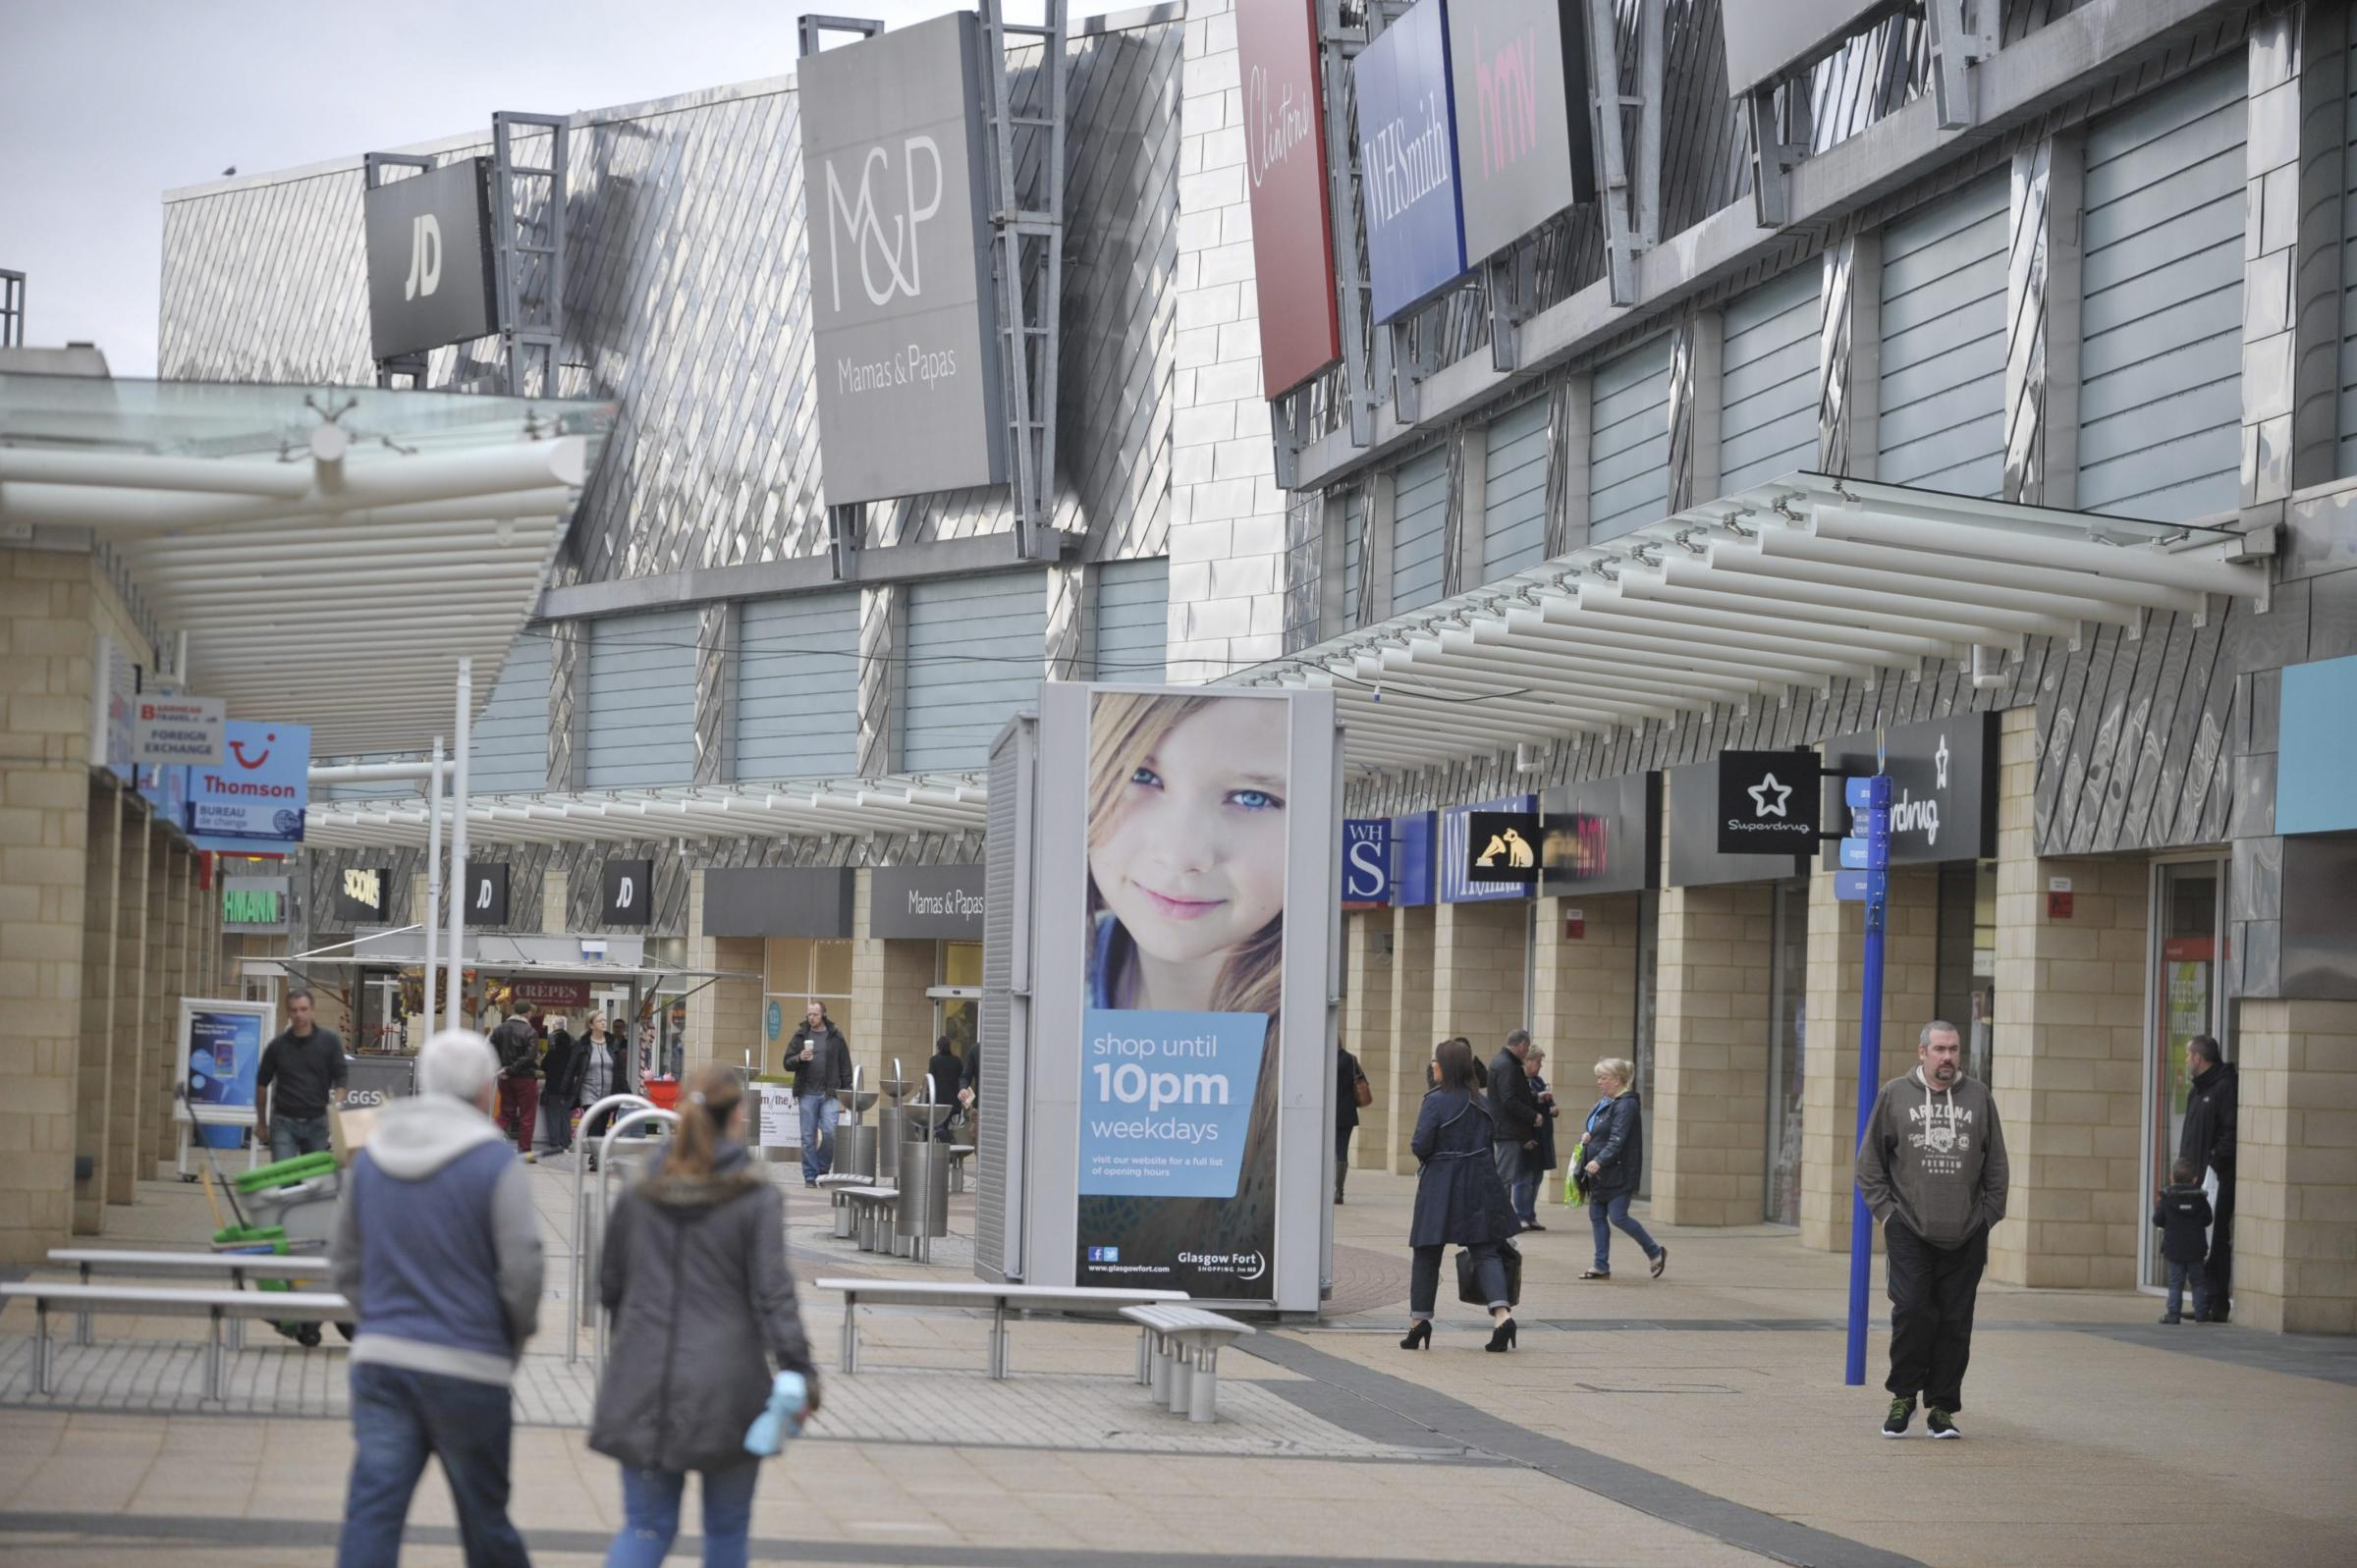 GLASGOW, SCOTLAND - OCTOBER 20: general view of the Glasgow Fort shopping Centre on October 20, 2014 in Glasgow, Scotland. The centre is celebrating it's 10th Birthday (Photo by Jamie Simpson/Herald & Times) - JS.